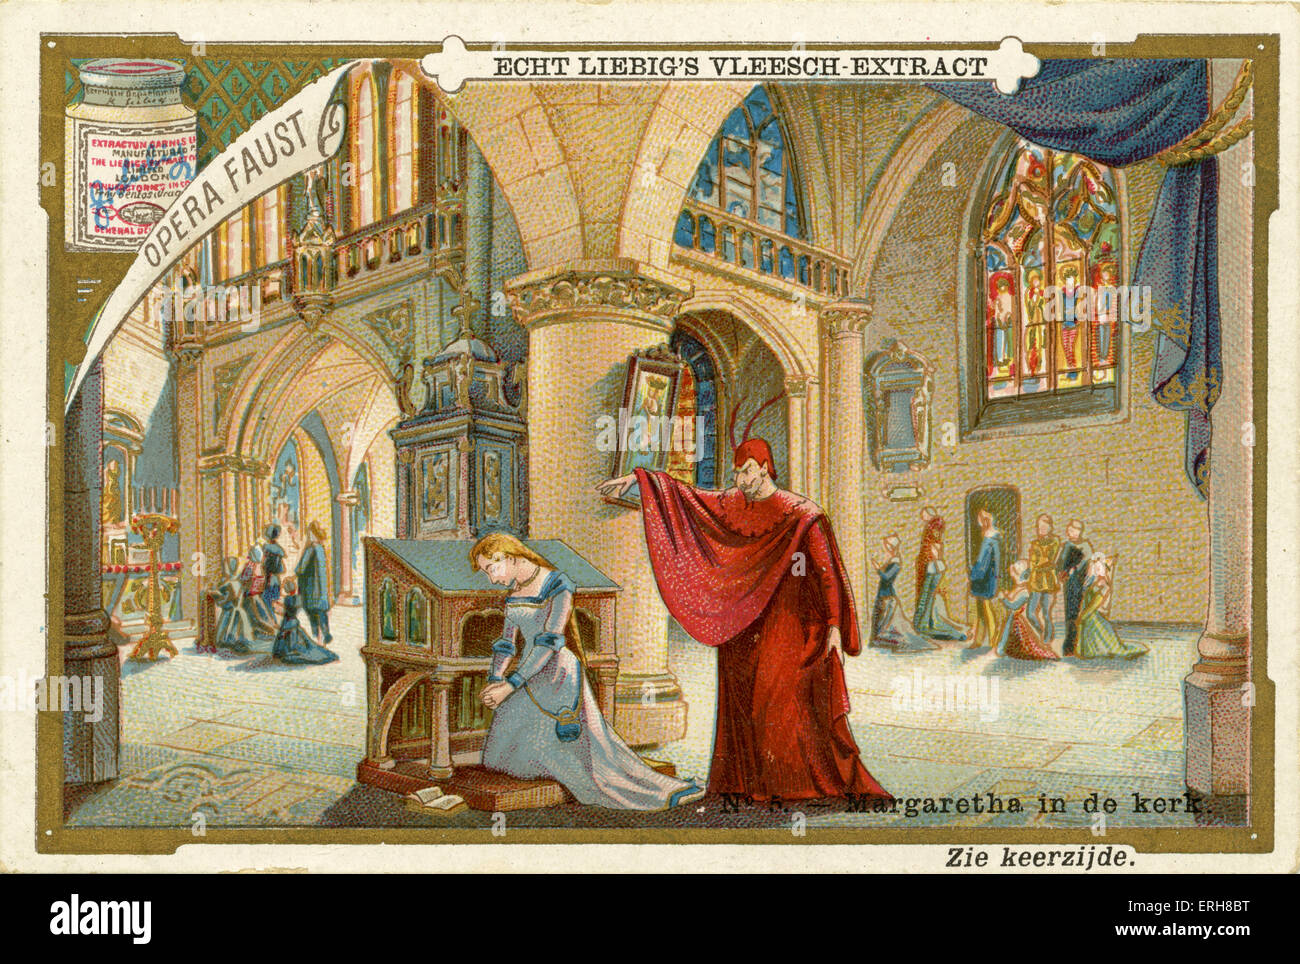 Faust - the Opera ('Opera Faust'). Published 1892. Opera by Charles Francois Gounod, French composer: 18 - Stock Image